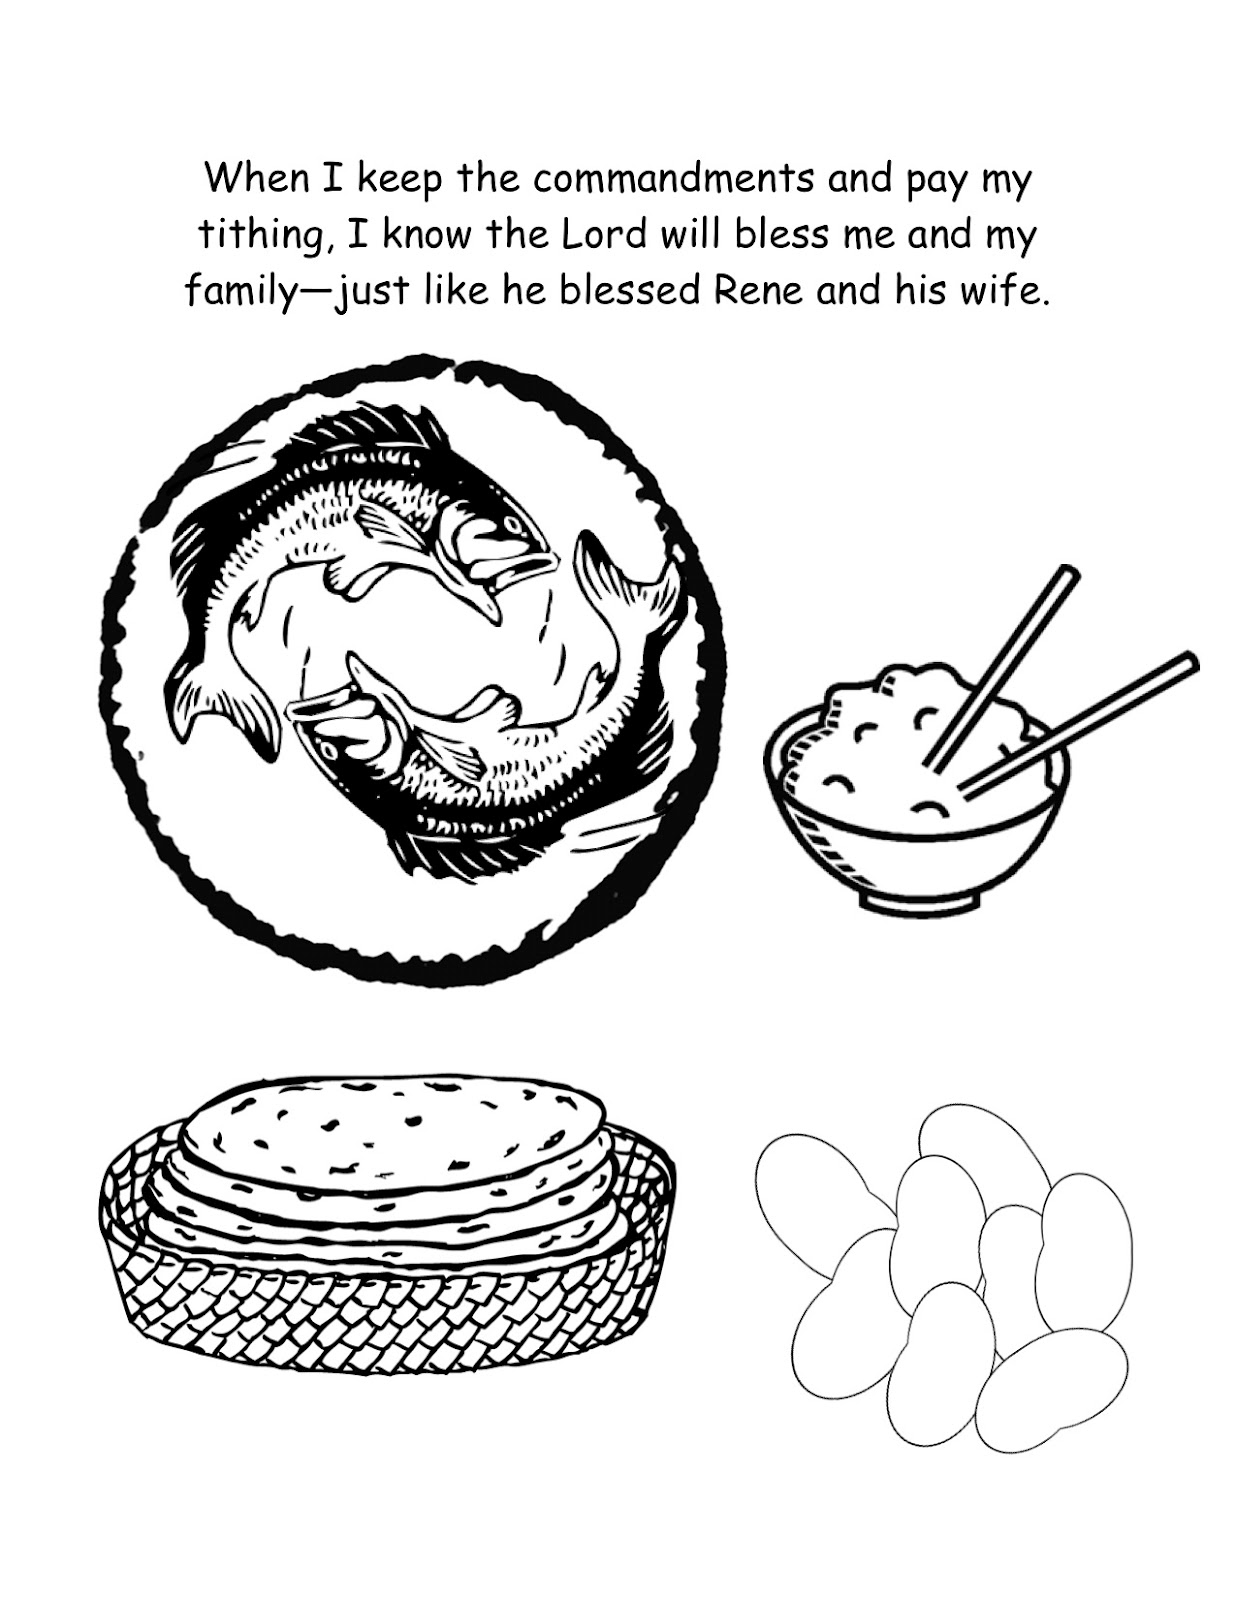 tithing coloring page - everyday loves primary sharing time